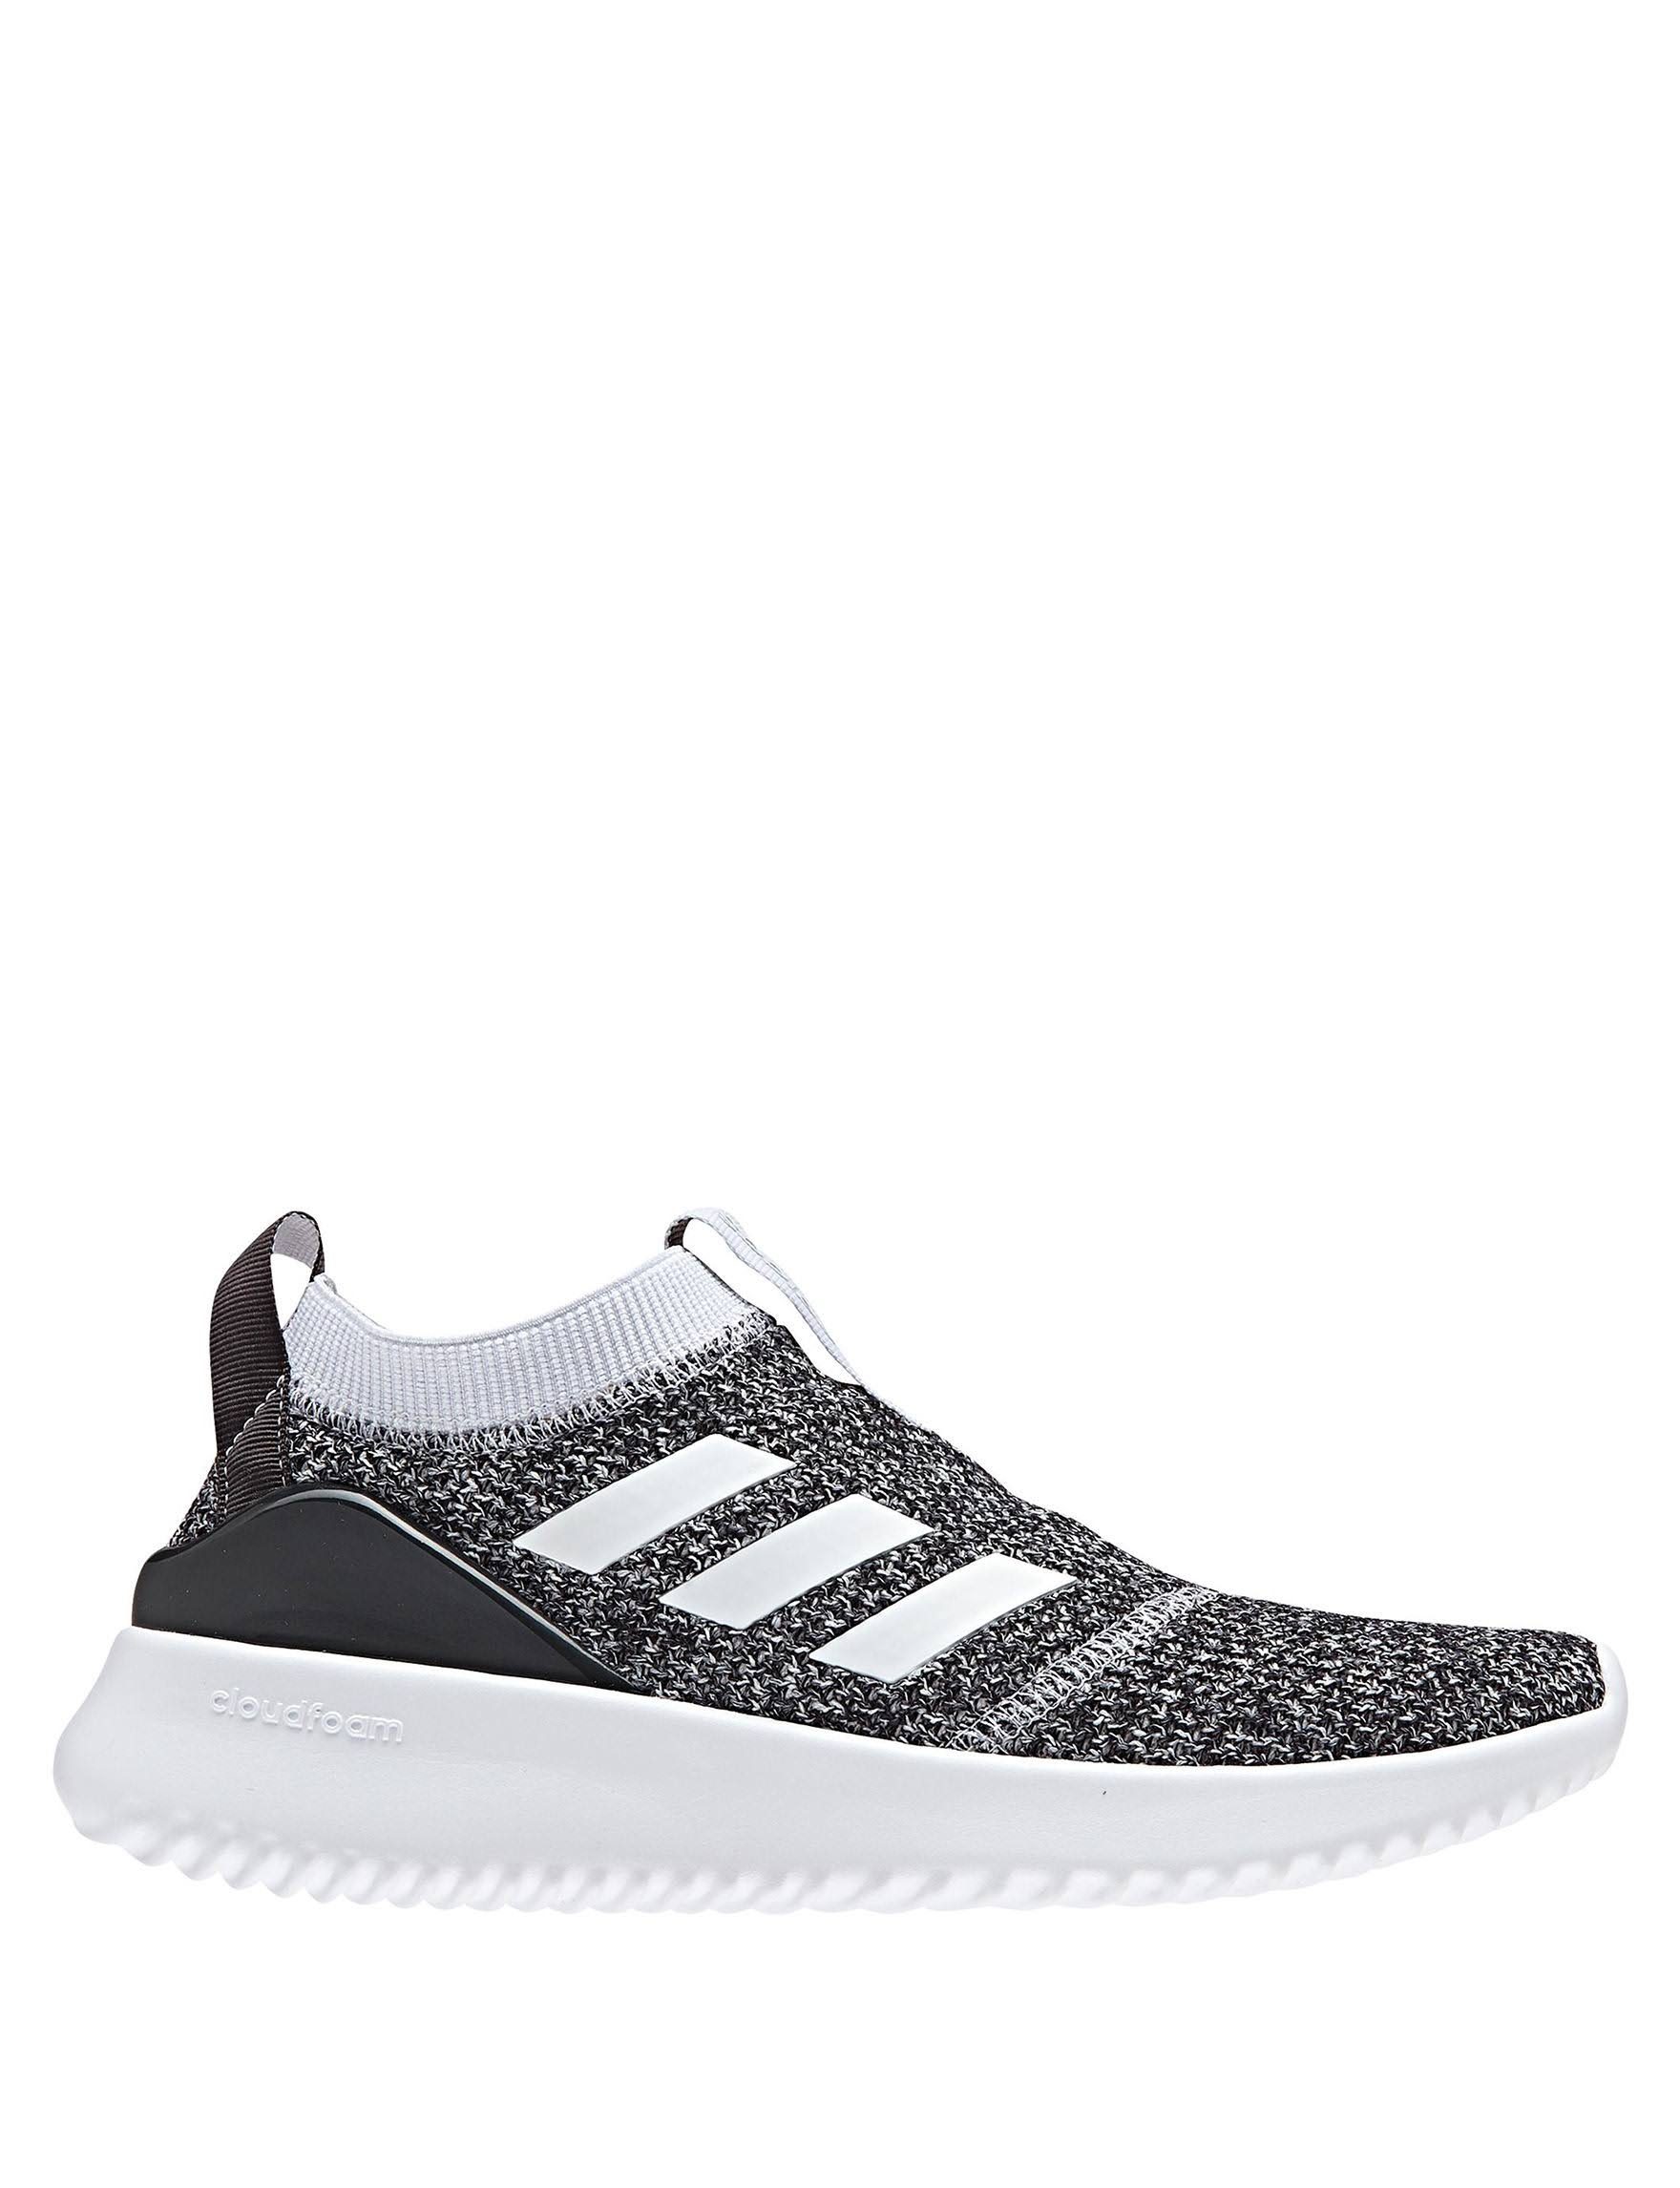 Adidas Adidas Adidas Ultimafusiondonna Ultimafusiondonna Ultimafusiondonna Adidas Ultimafusiondonna Adidas Ultimafusiondonna Ultimafusiondonna Adidas Adidas 9eWEH2IYDb